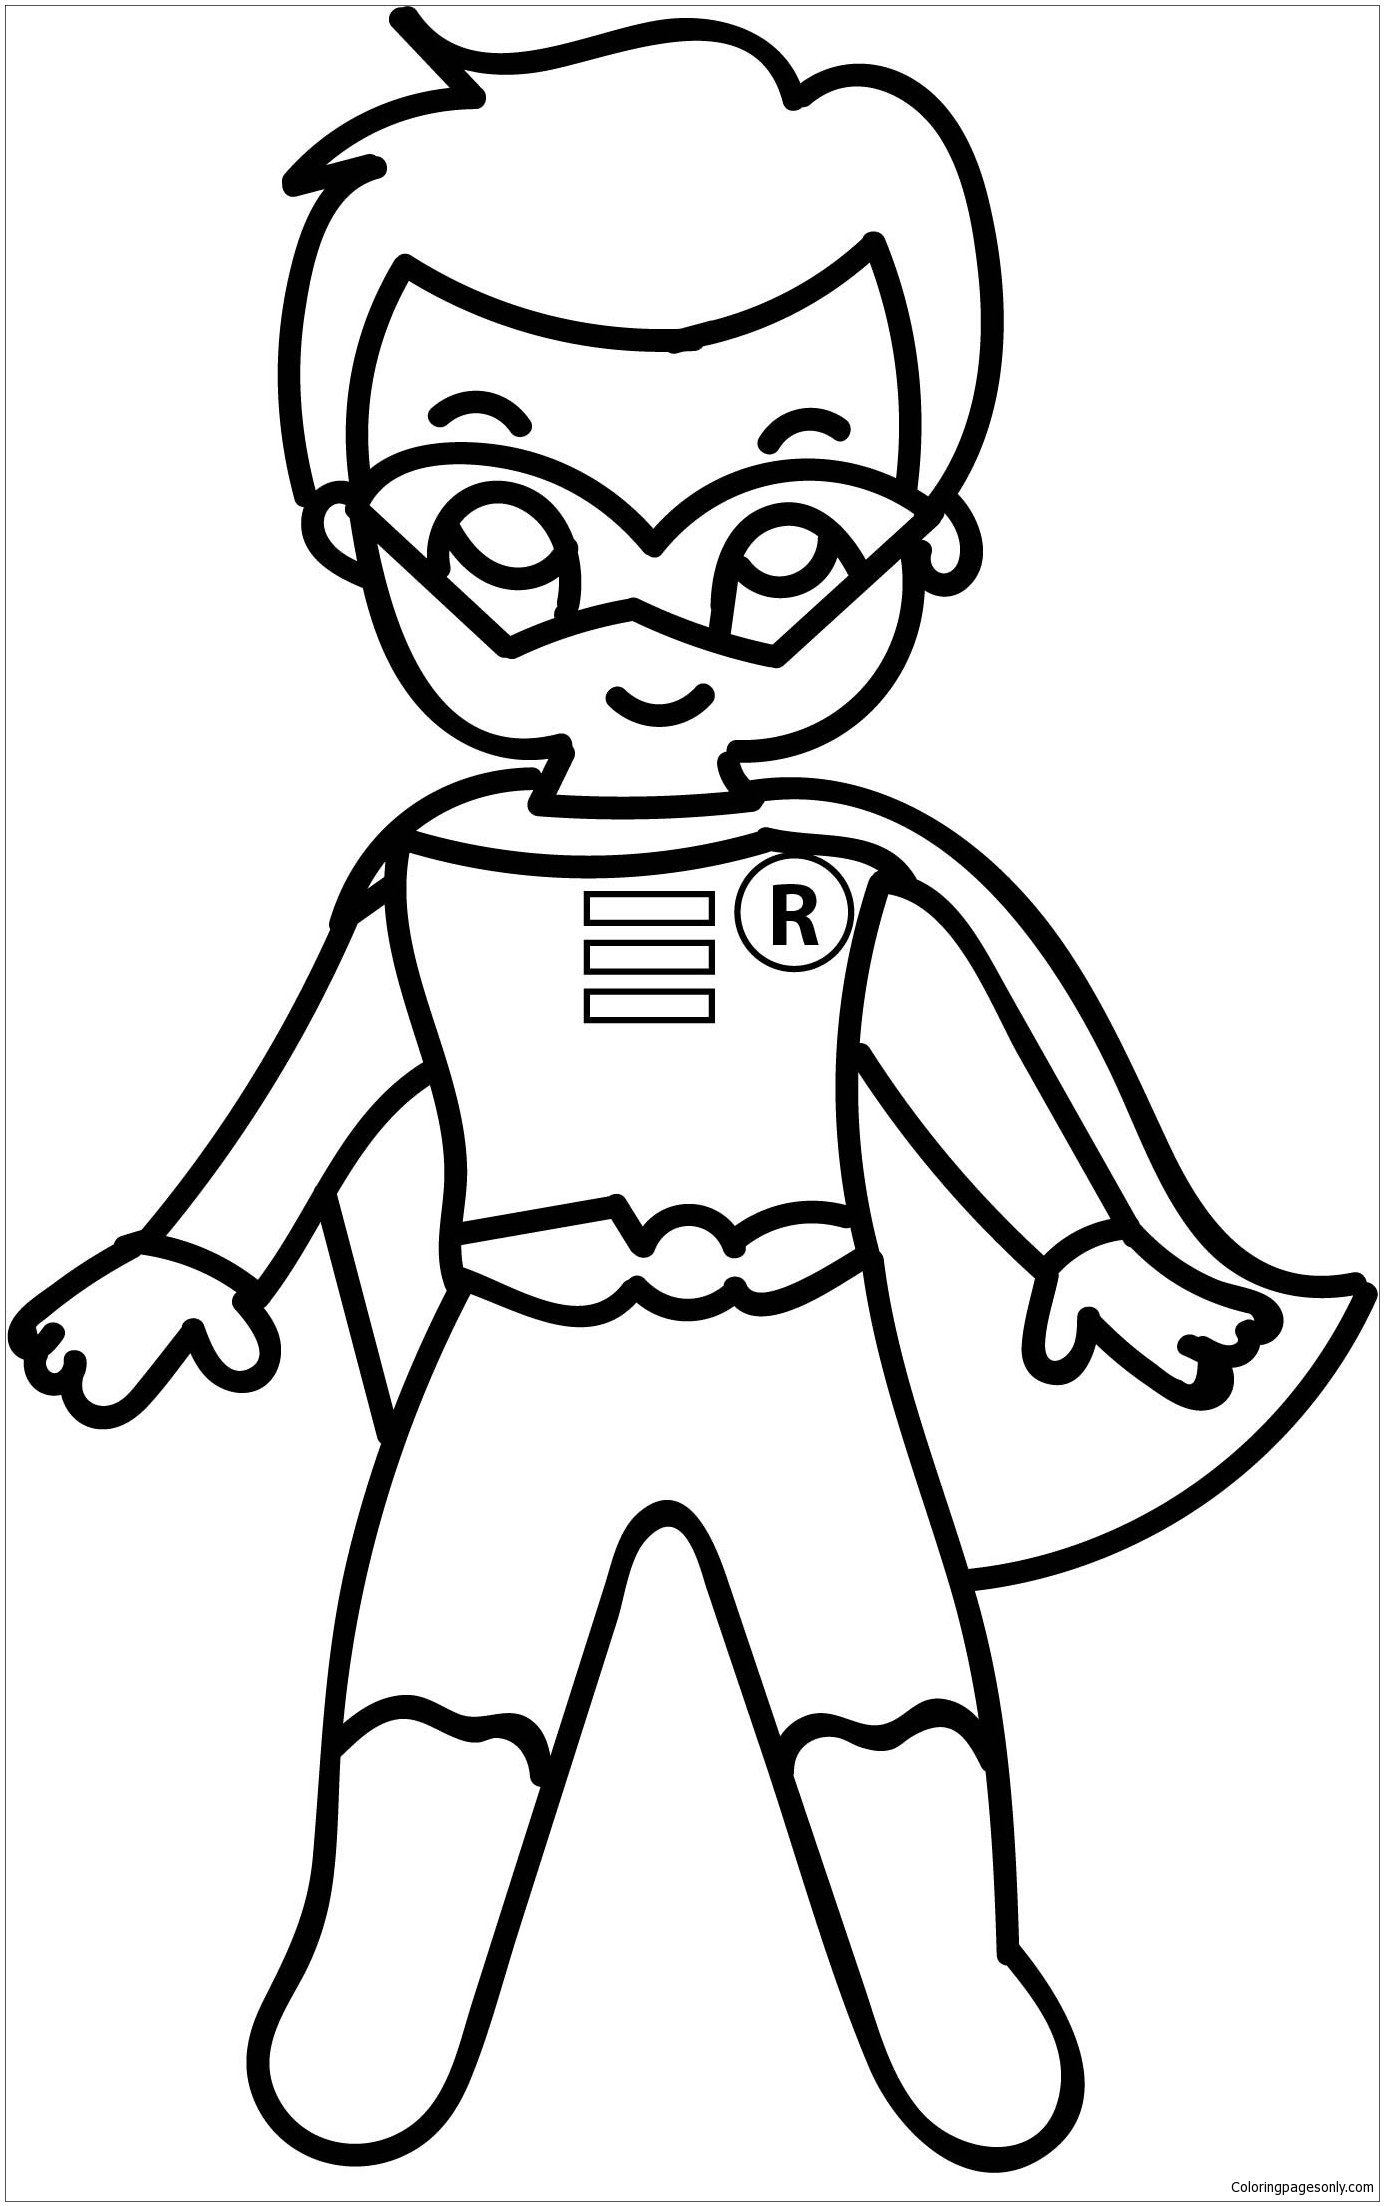 Cartoon Superhero Coloring Page - Free Coloring Pages Online